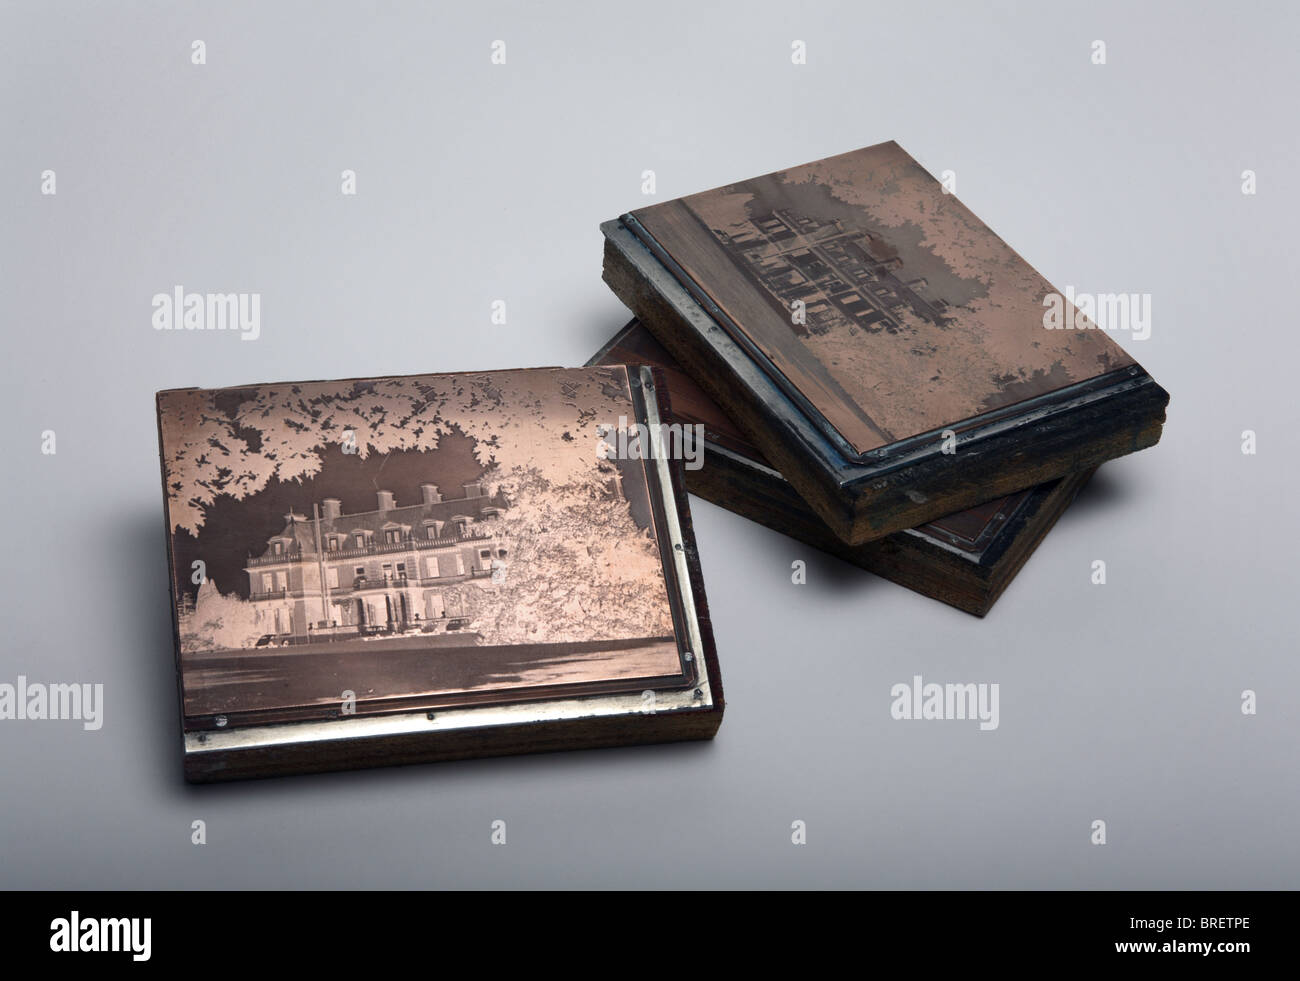 Letterpress blocks used to print a picture. - Stock Image